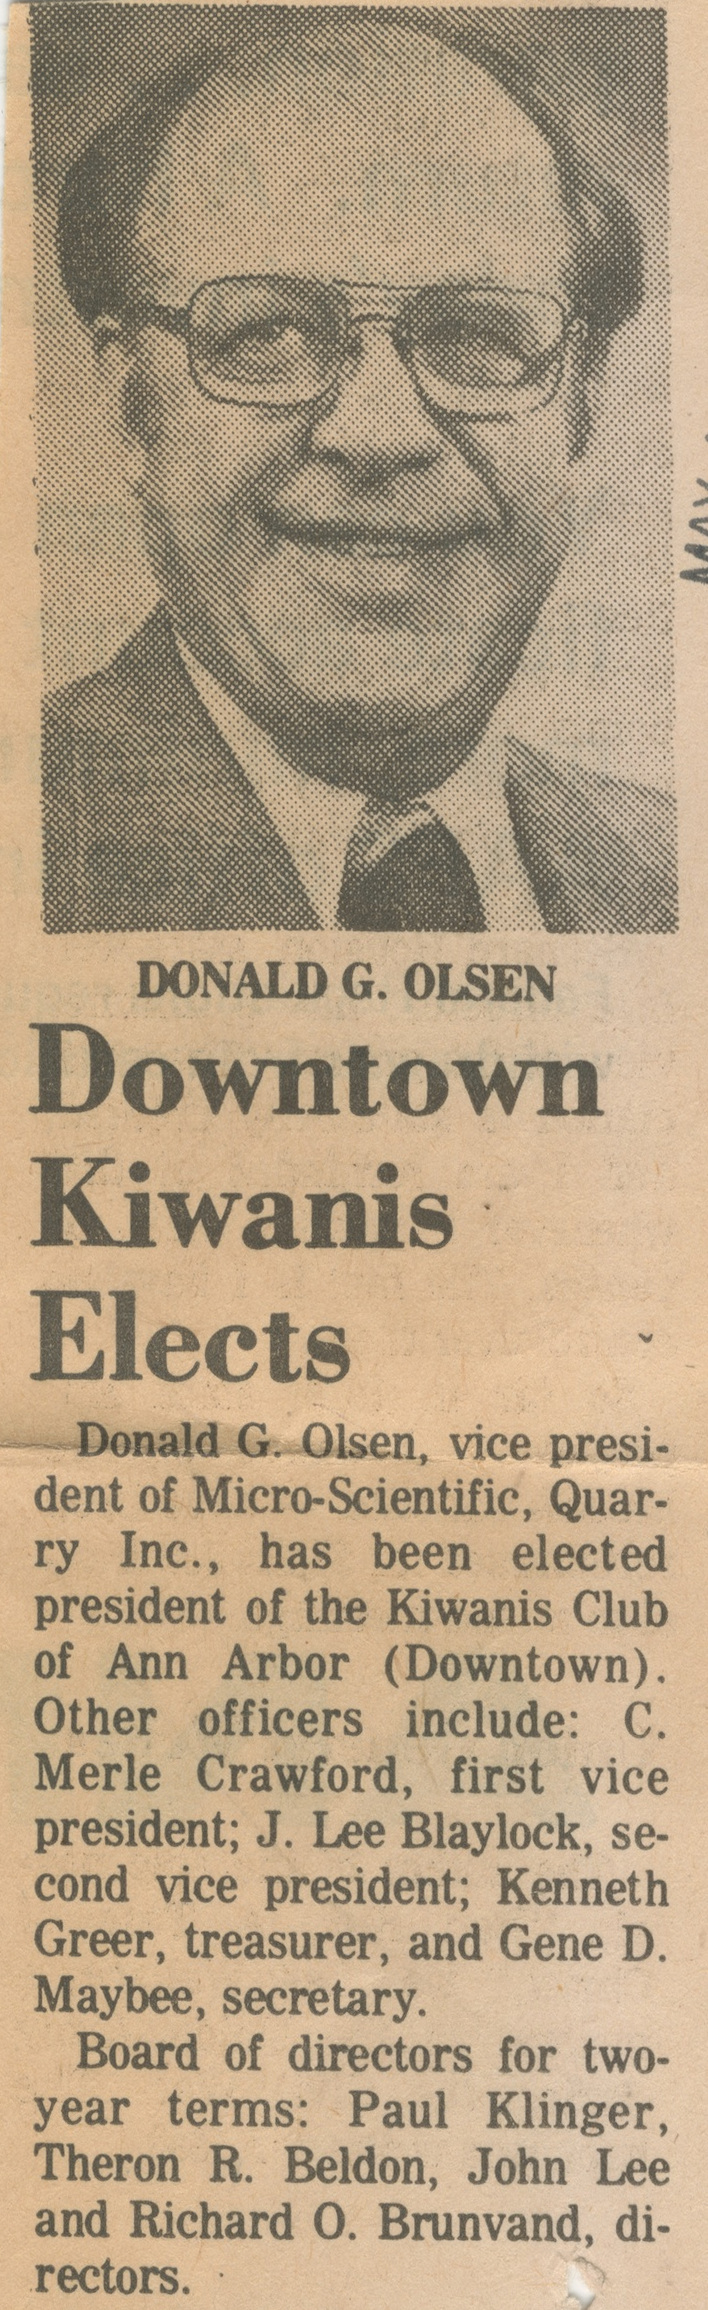 Downtown Kiwanis Elects image